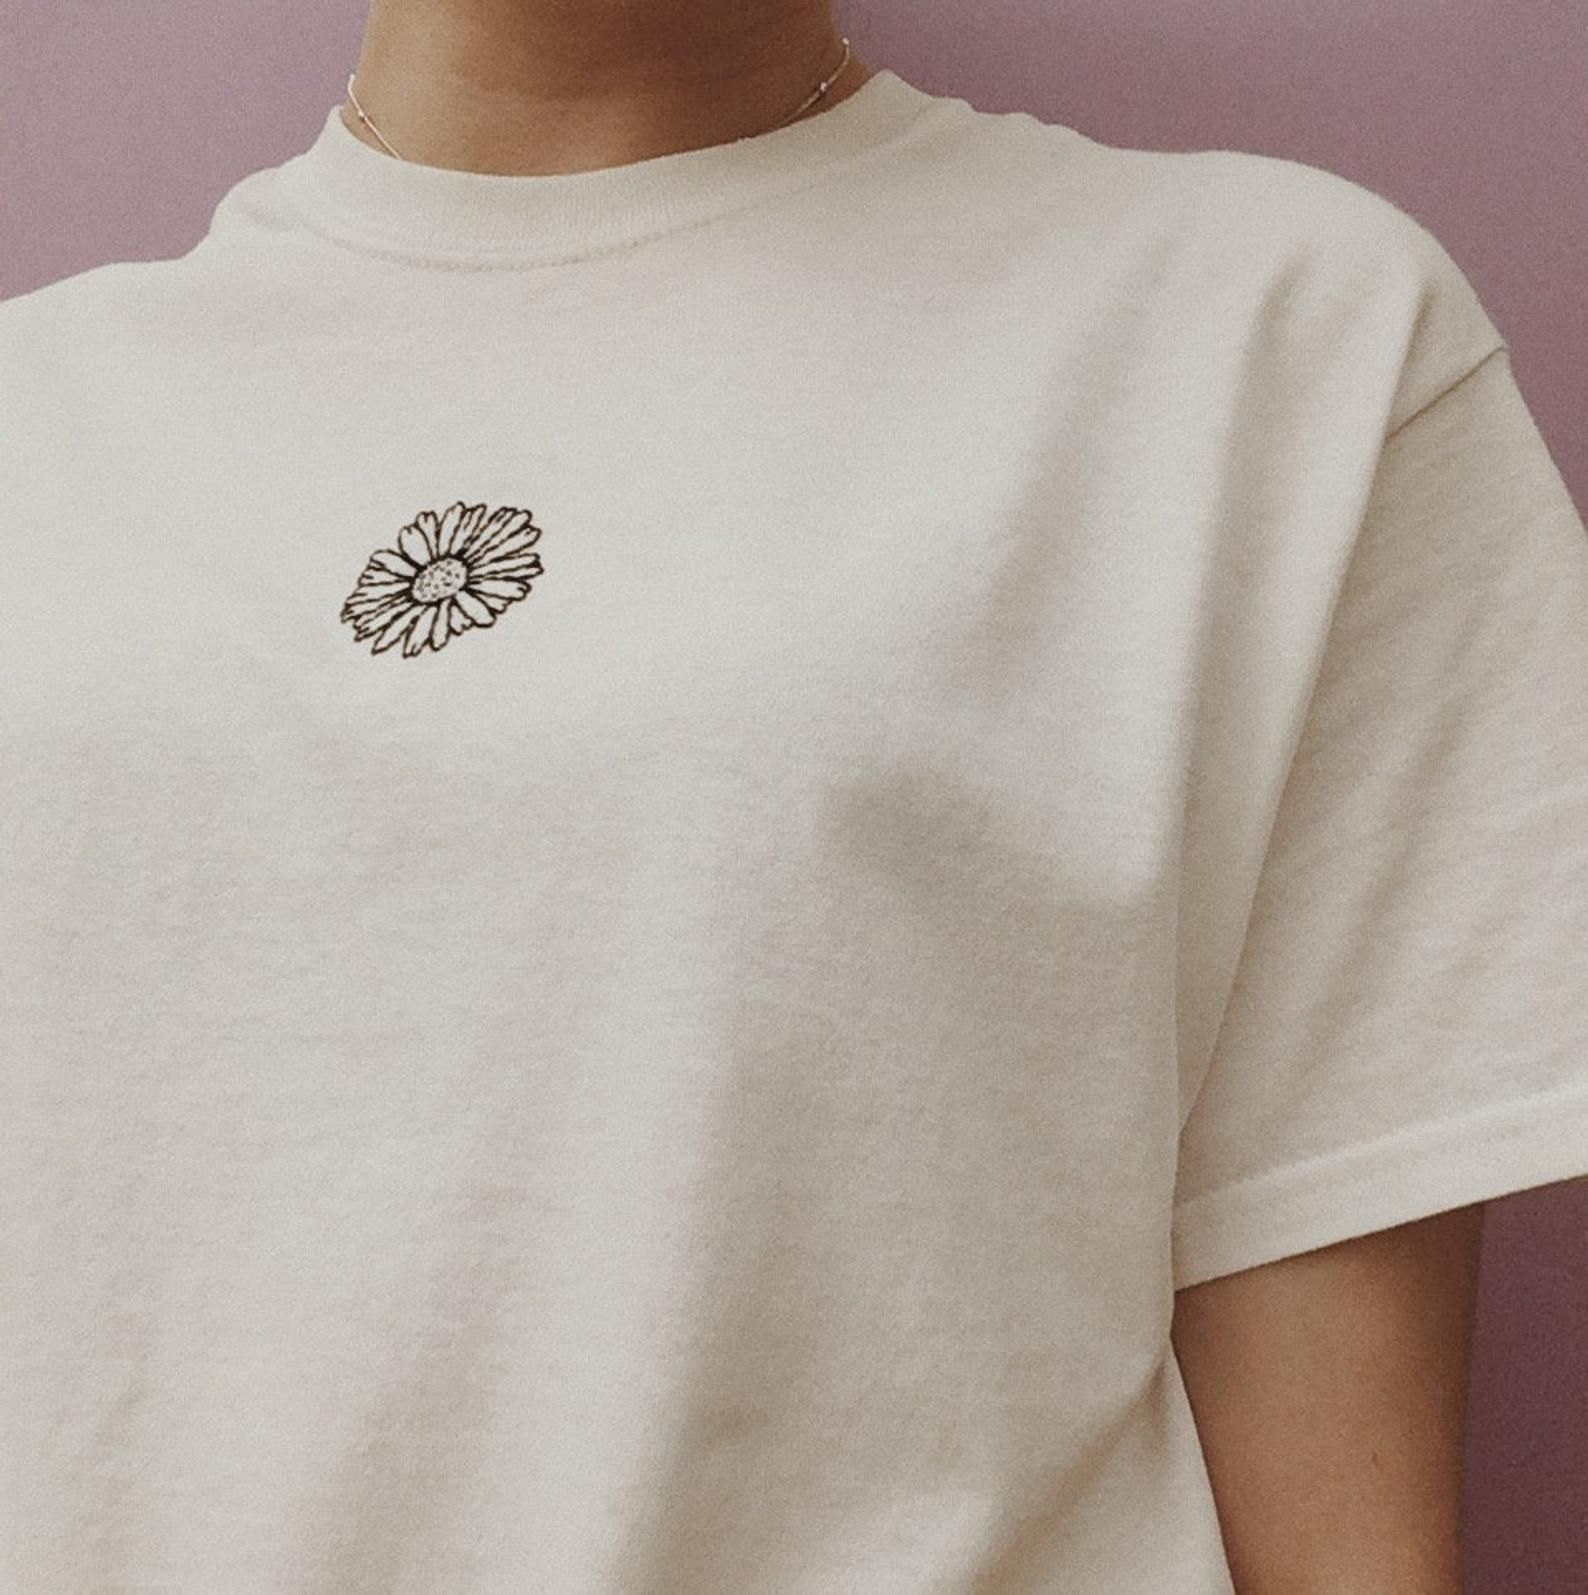 Hand Embroidered Daisy T-Shirt